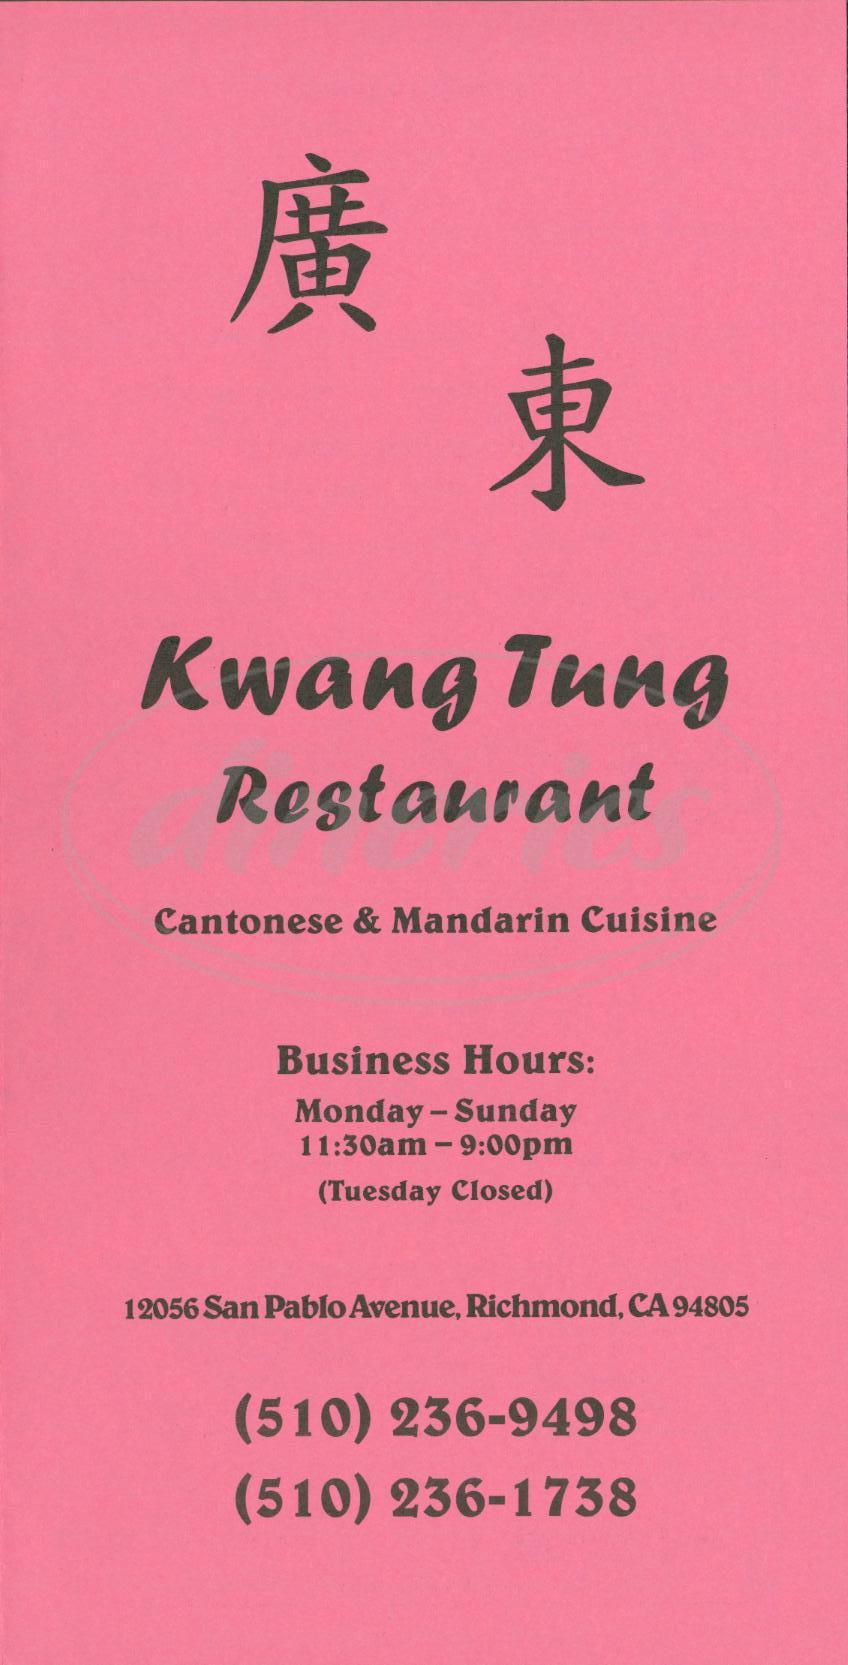 menu for Kwang Tung Restaurant